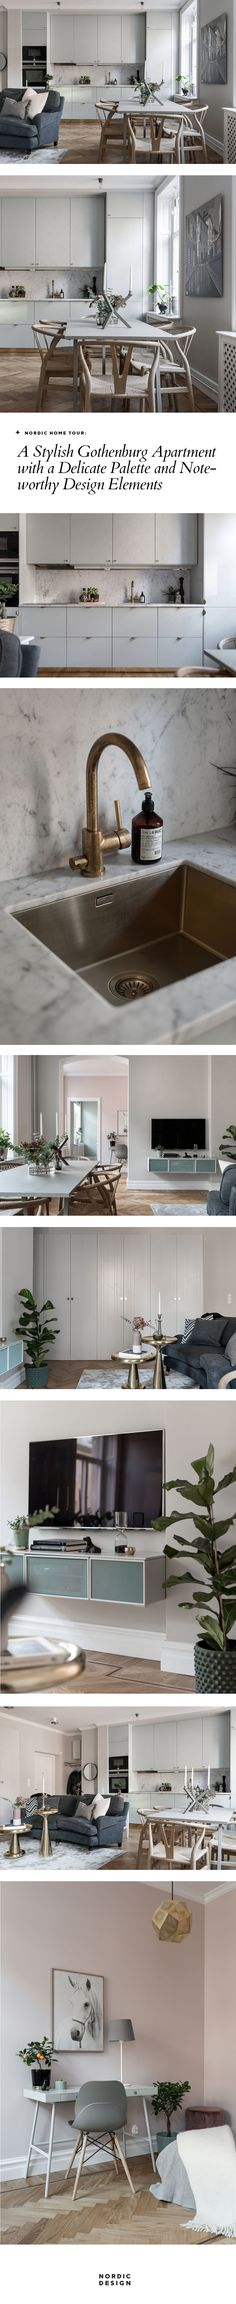 Nordic home tour: A stylish Gothenburg apartment with a delicate palette | NORDIC DESIGN